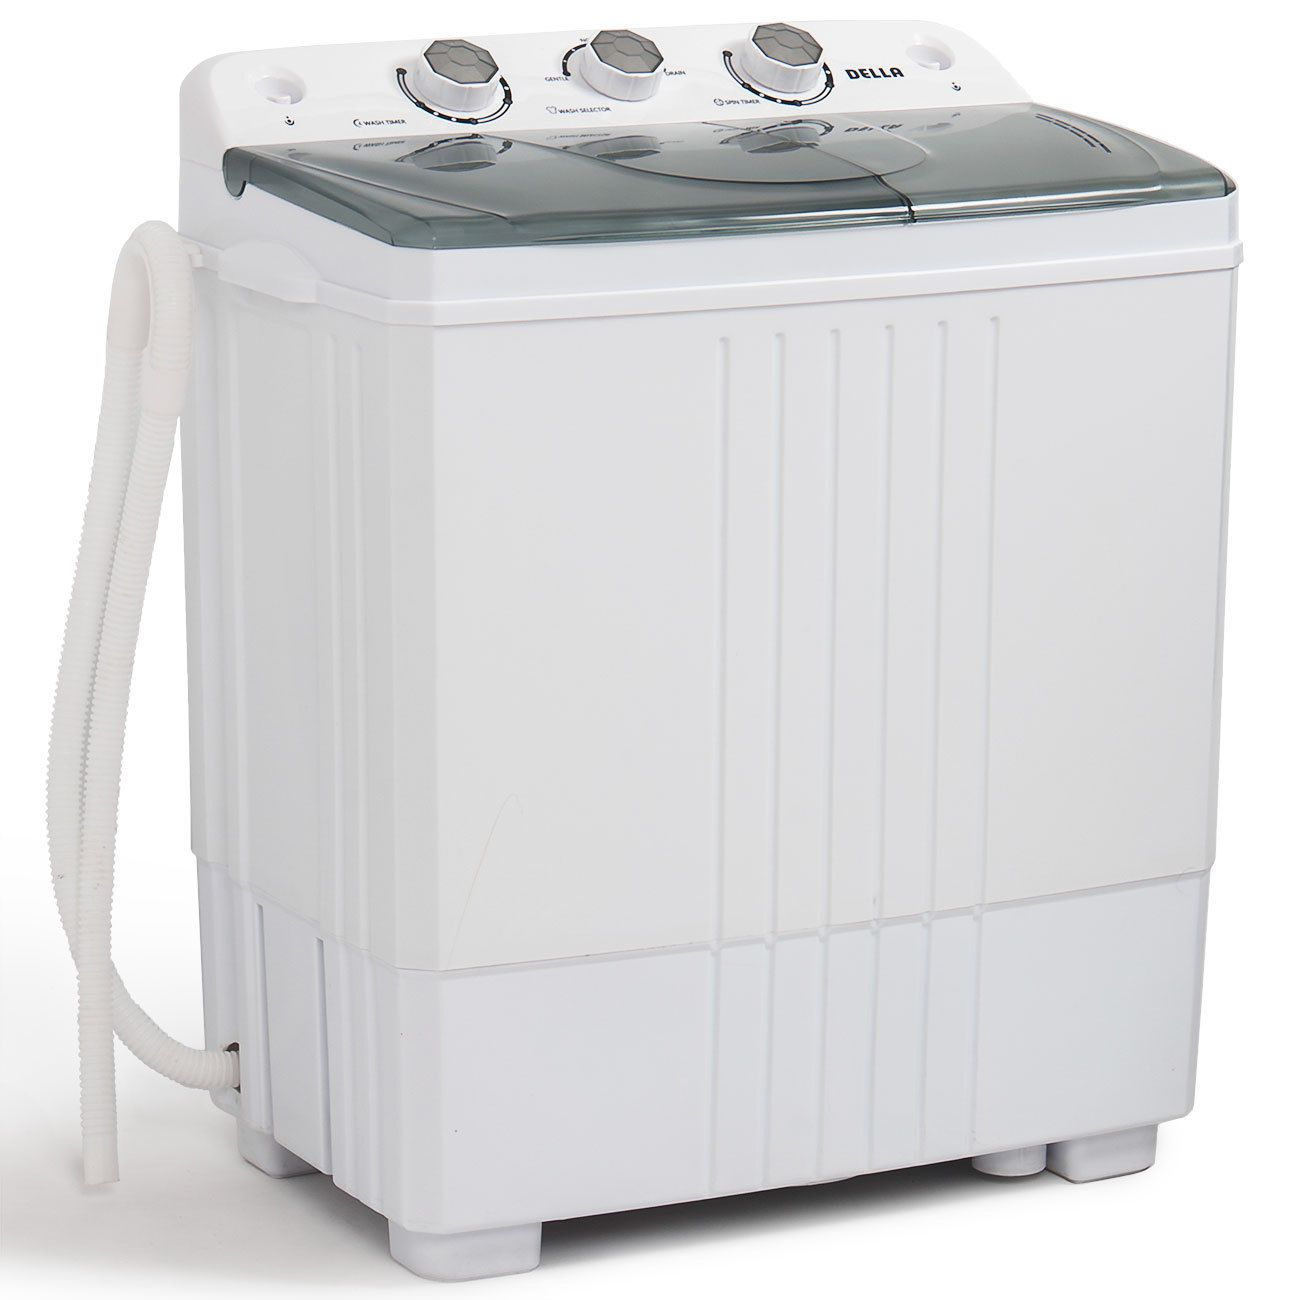 DELLA Electric Mini Washing Machine Home Twin Tub 8.8LBS Portable Compact Washer and Spin Dry Cycle Built-in Drain Pump w//Hose